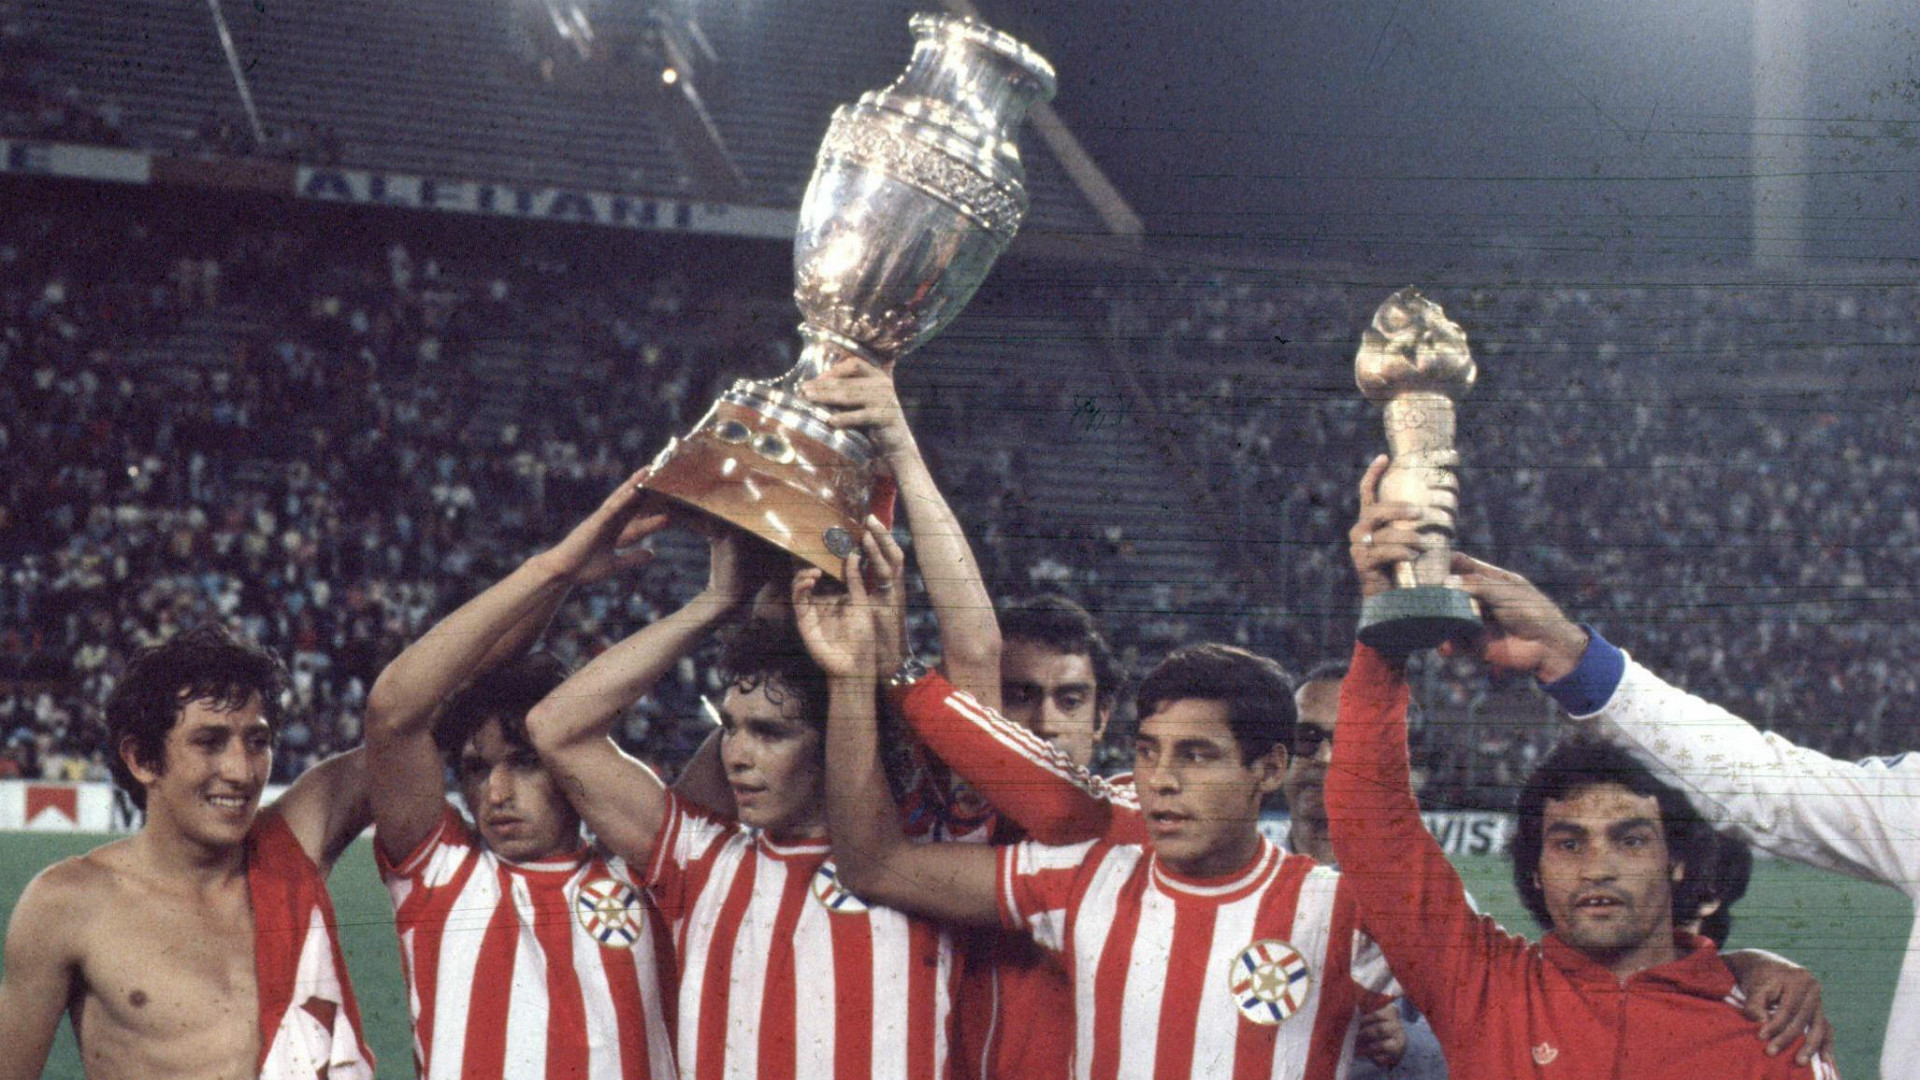 copa-america-1979-paraguay-claimed-second-copa-america-title